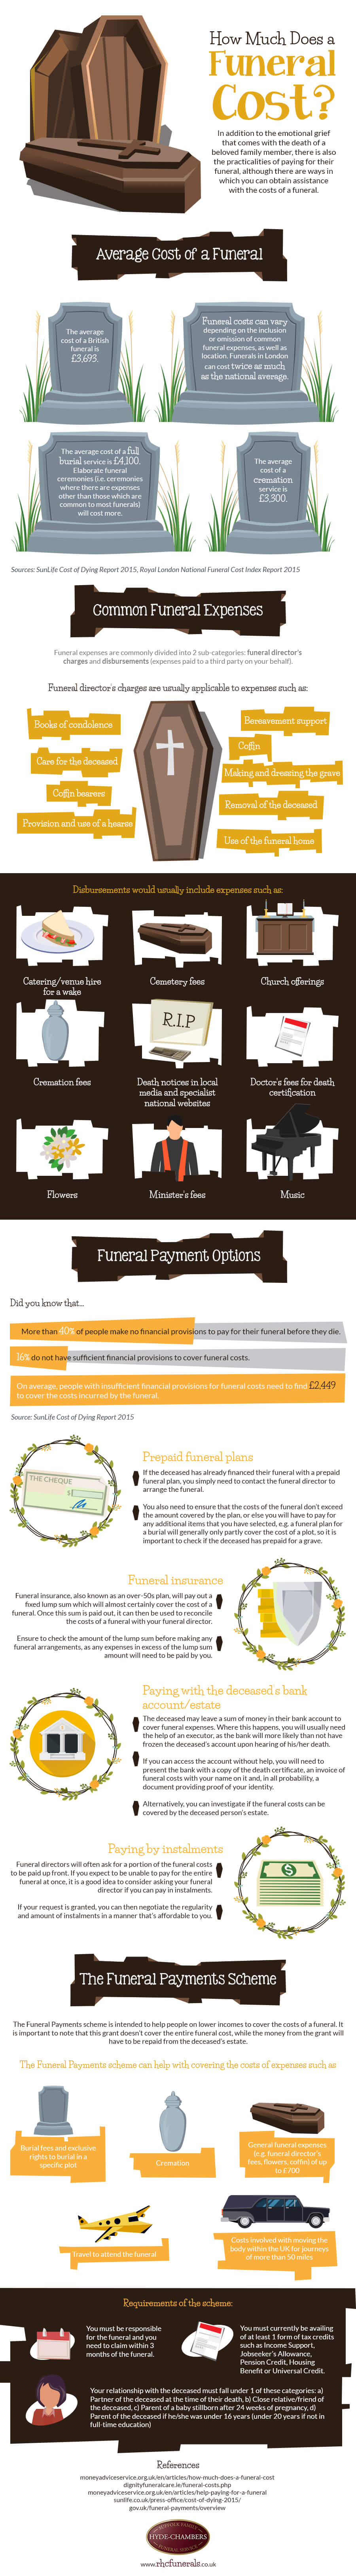 How-Much-Does-a-Funeral-Cost-Infographic-plaza